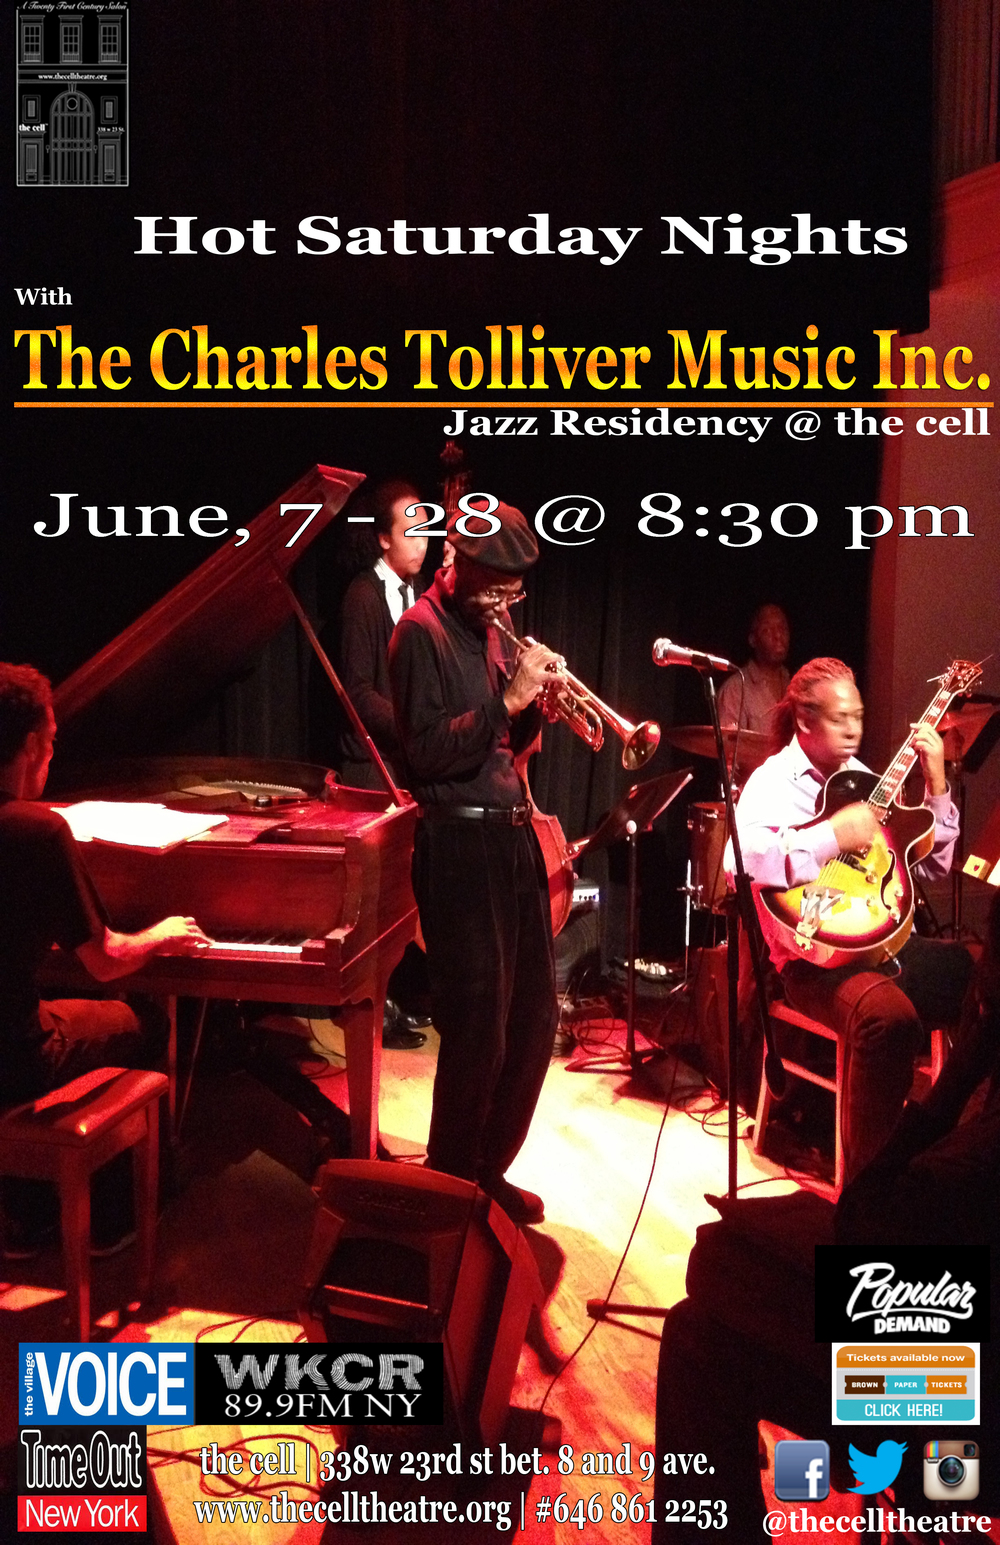 "Charles Tolliver began his professional career and simultaneously his recording debut with the saxophone giant Jackie McLean on Blue Note Records in 1964. Since then he has become one of the preeminent trumpeters in Jazz as well as one of its most gifted composer/arranger bandleaders. He is also a Grammy nominated recipient for his Blue Note Records recording ""With Love"".  With a career that has spanned five decades he has recorded and/or performed with such renowned artists as Roy Haynes, Hank Mobley, Willie Bobo, Horace Silver, McCoy Tyner, Sonny Rollins, Booker Ervin, Gary Bartz, Gerald Wilson Orchestra, Oliver Nelson, Stanley Cowell, Herbie Hancock, Andrew Hill, Louis Hayes, Roy Ayers, Art Blakey & the Jazz Messengers, and owned the trumpet chair with the great Max Roach for some years.  One of his latest recordings is ""Emperor March"" recorded live at the Blue Note club New York City.    The Charles Tolliver Quintet just returned from a triumphal European Tour that led the band from Paris to Zagreb for the second part of its Jazz Residency @ the cell.      read more  here !"